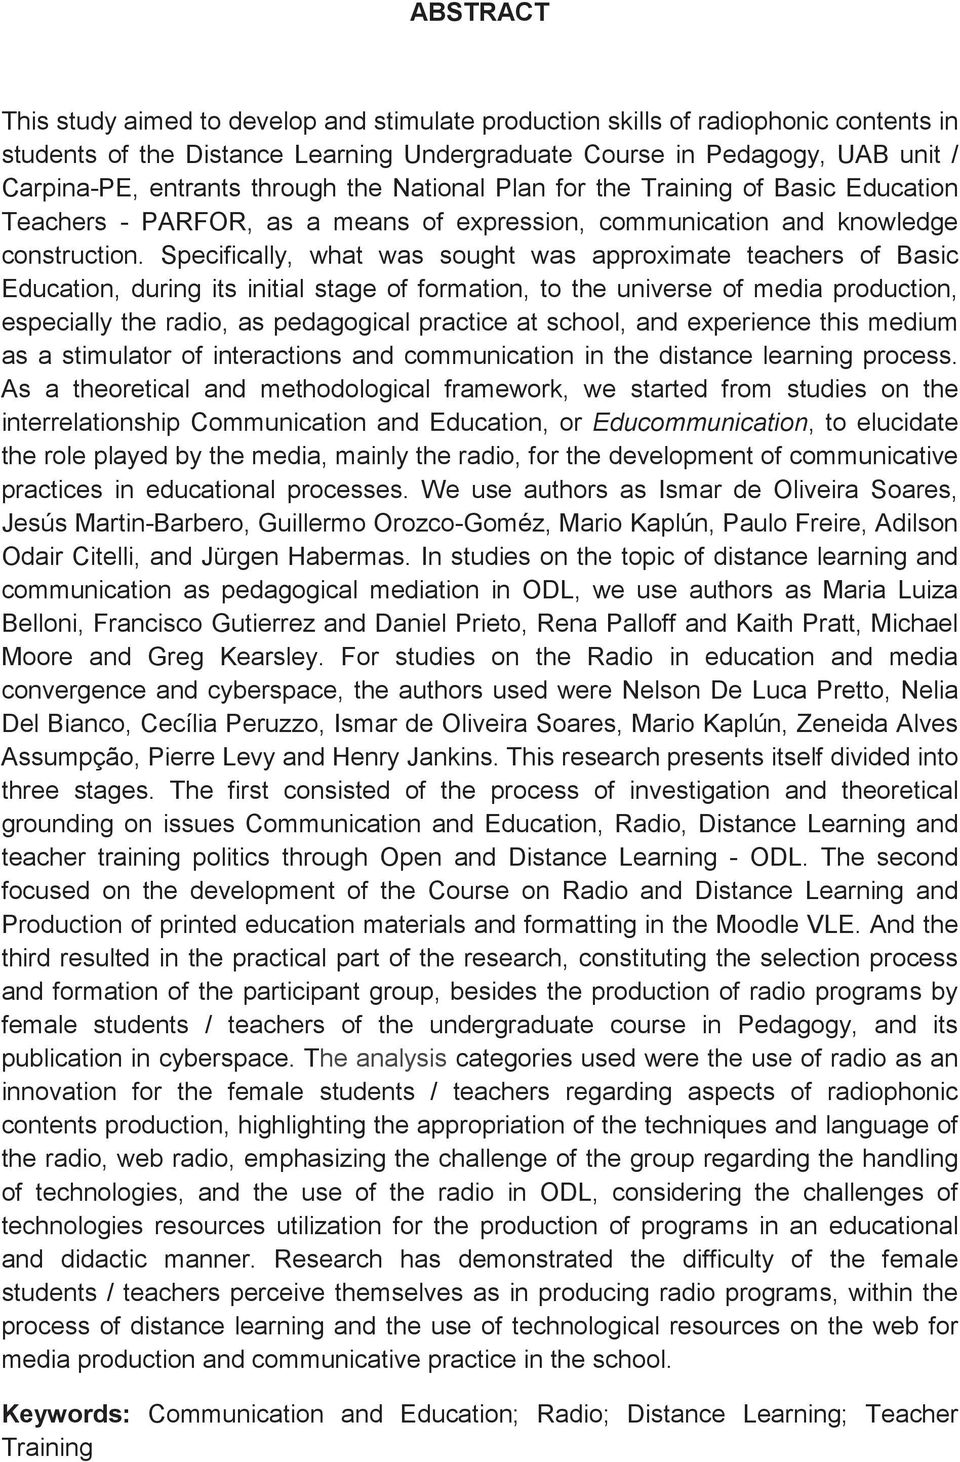 Specifically, what was sought was approximate teachers of Basic Education, during its initial stage of formation, to the universe of media production, especially the radio, as pedagogical practice at